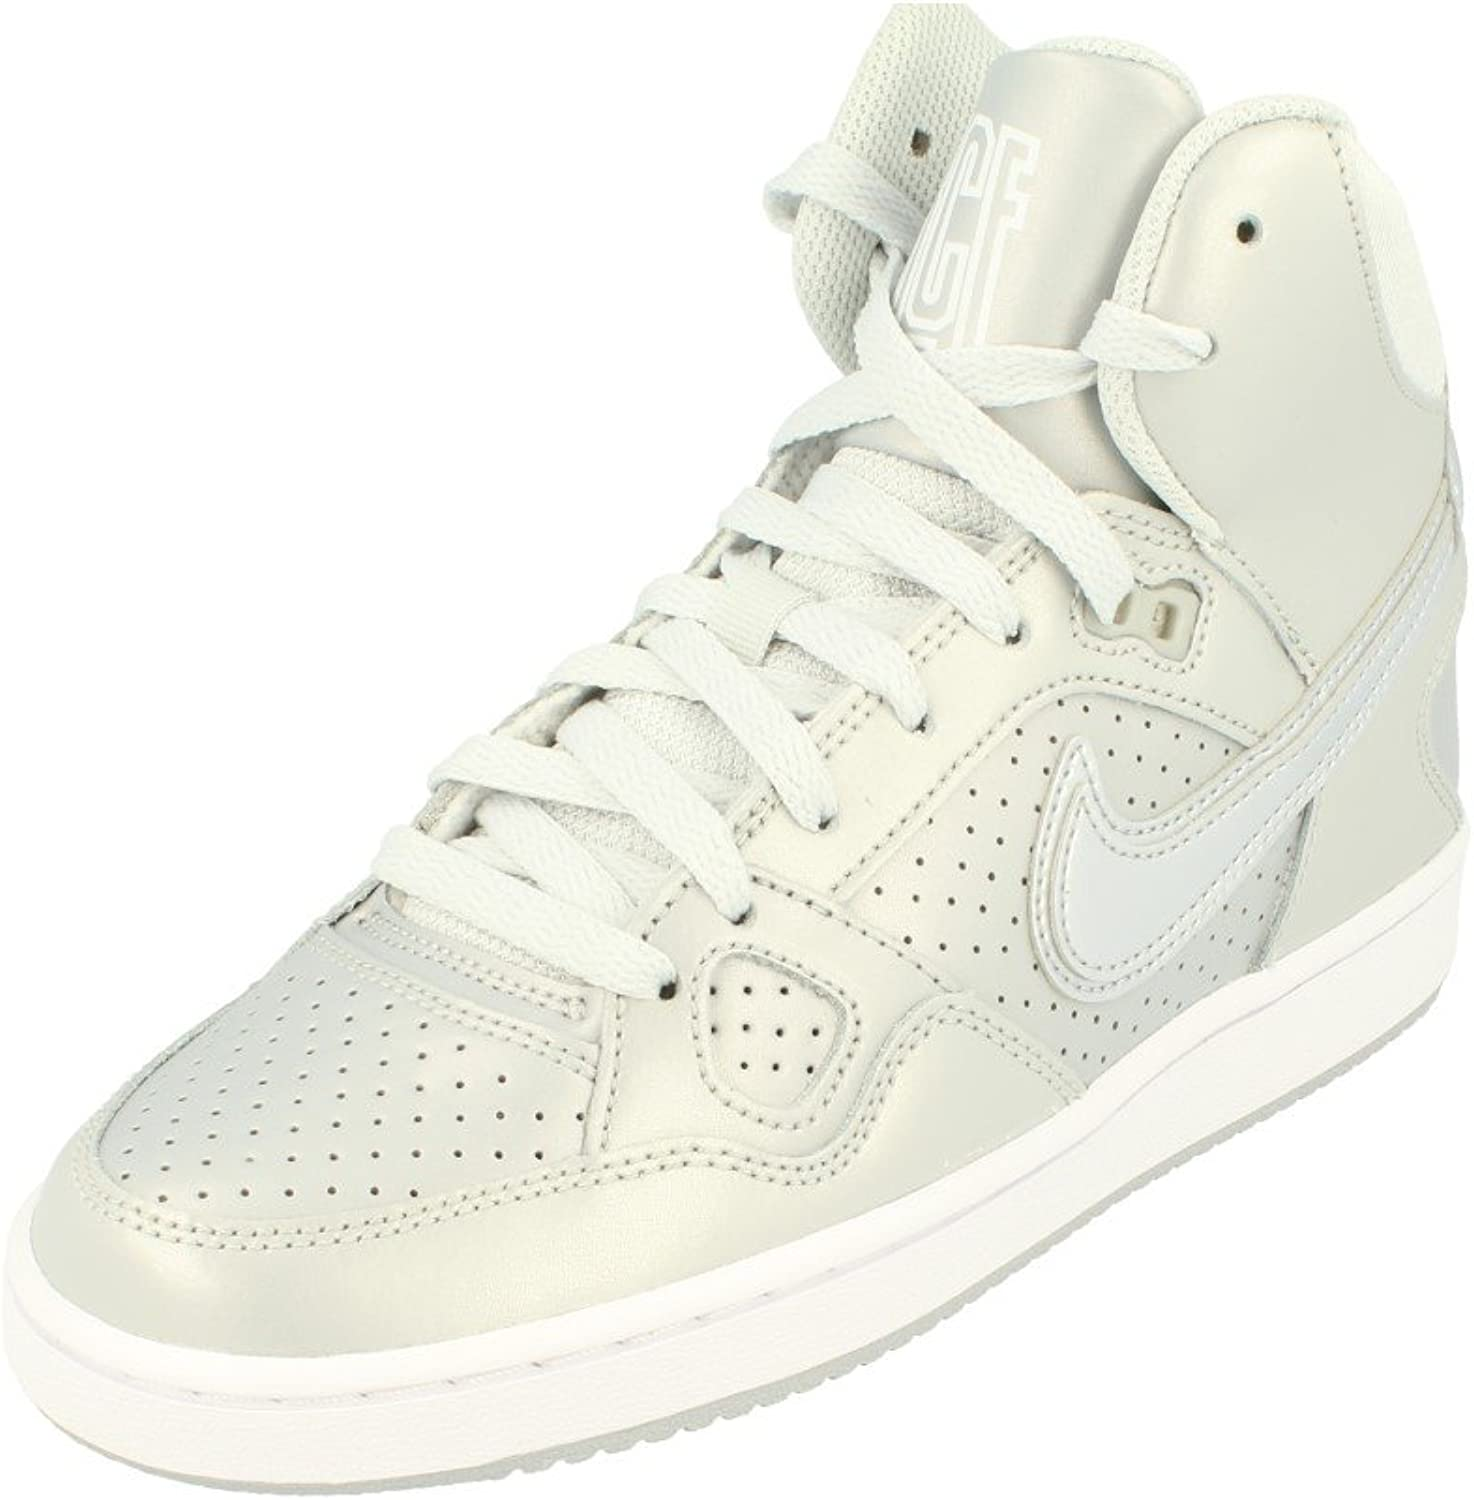 Nike Women's Son Of Force Mid Mid-Top Leather Basketball shoes